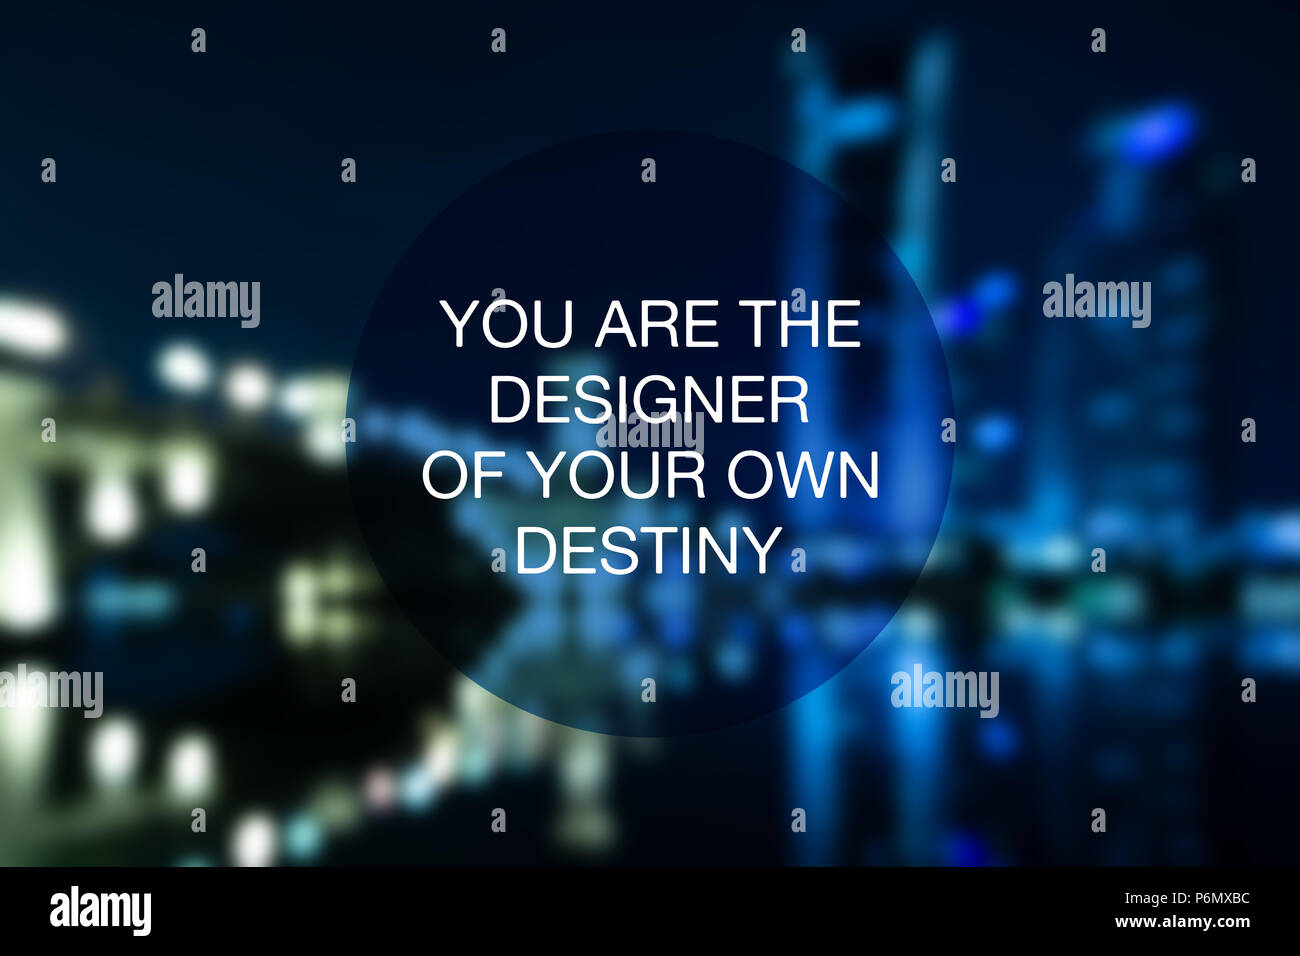 Motivational and inspirational quote - You are the designer of your own destiny. - Stock Image